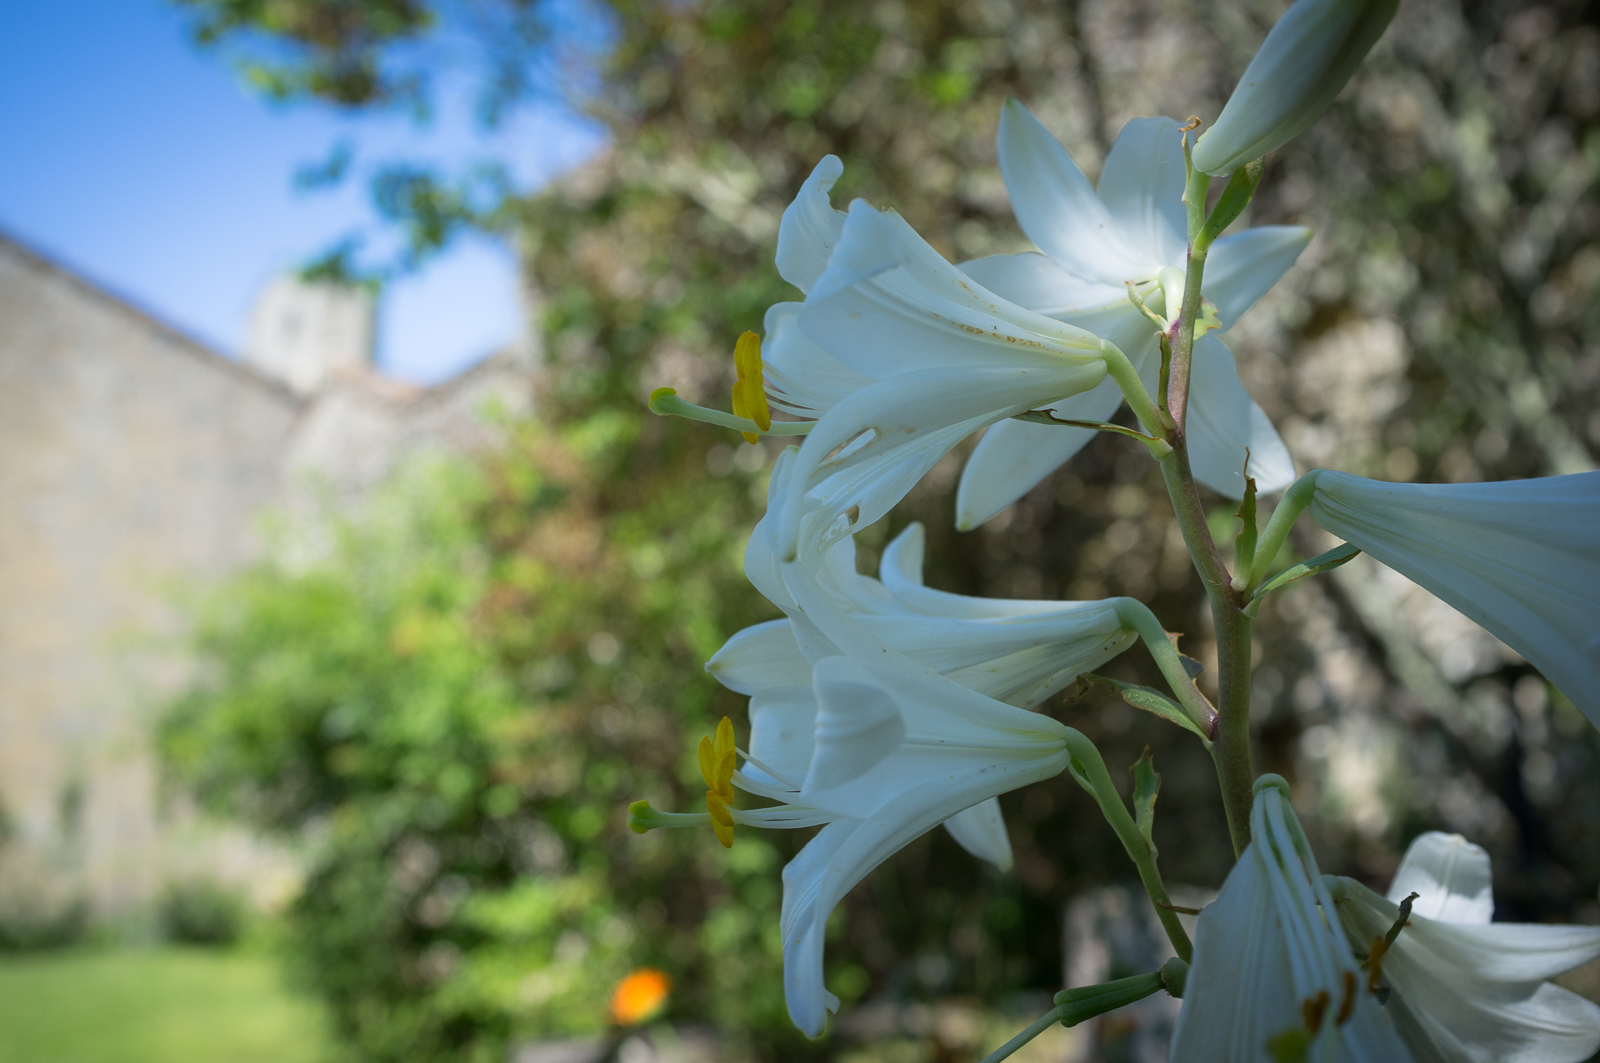 Lilies in the gardens at Maison des Vins